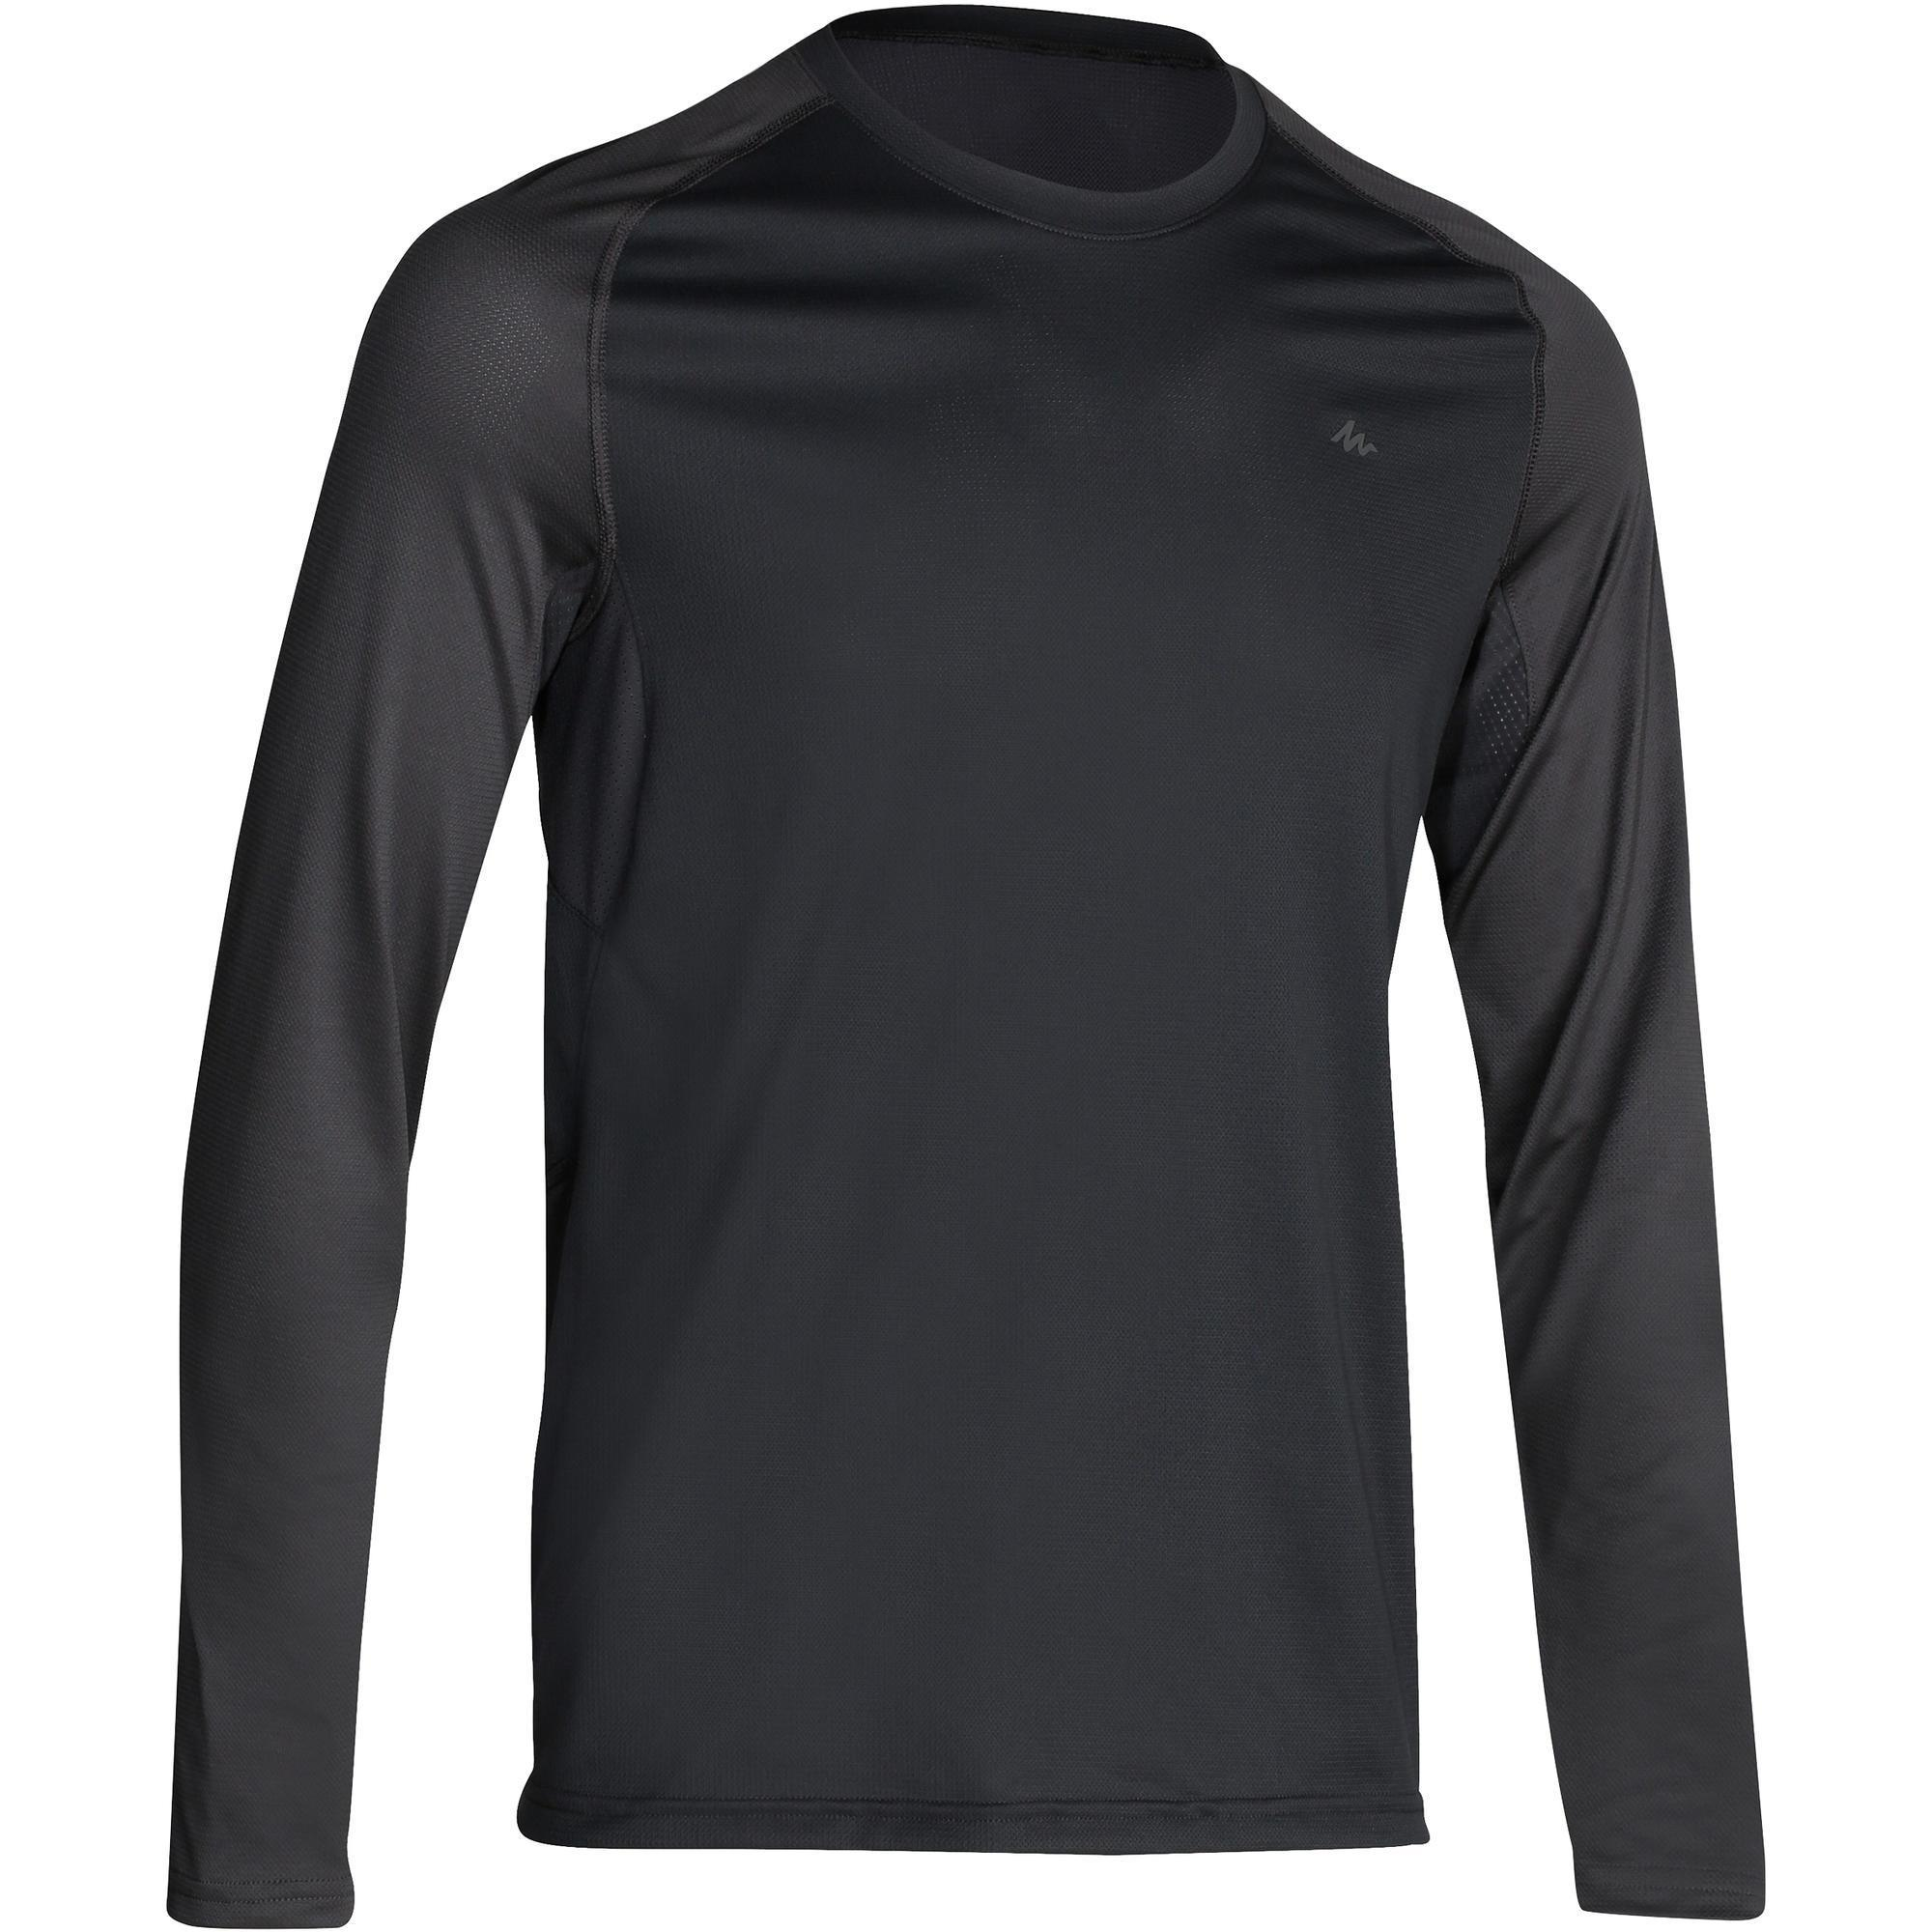 TechFRESH 100 Men's Long-Sleeved Hiking T-Shirt - Dark Grey | Quechua